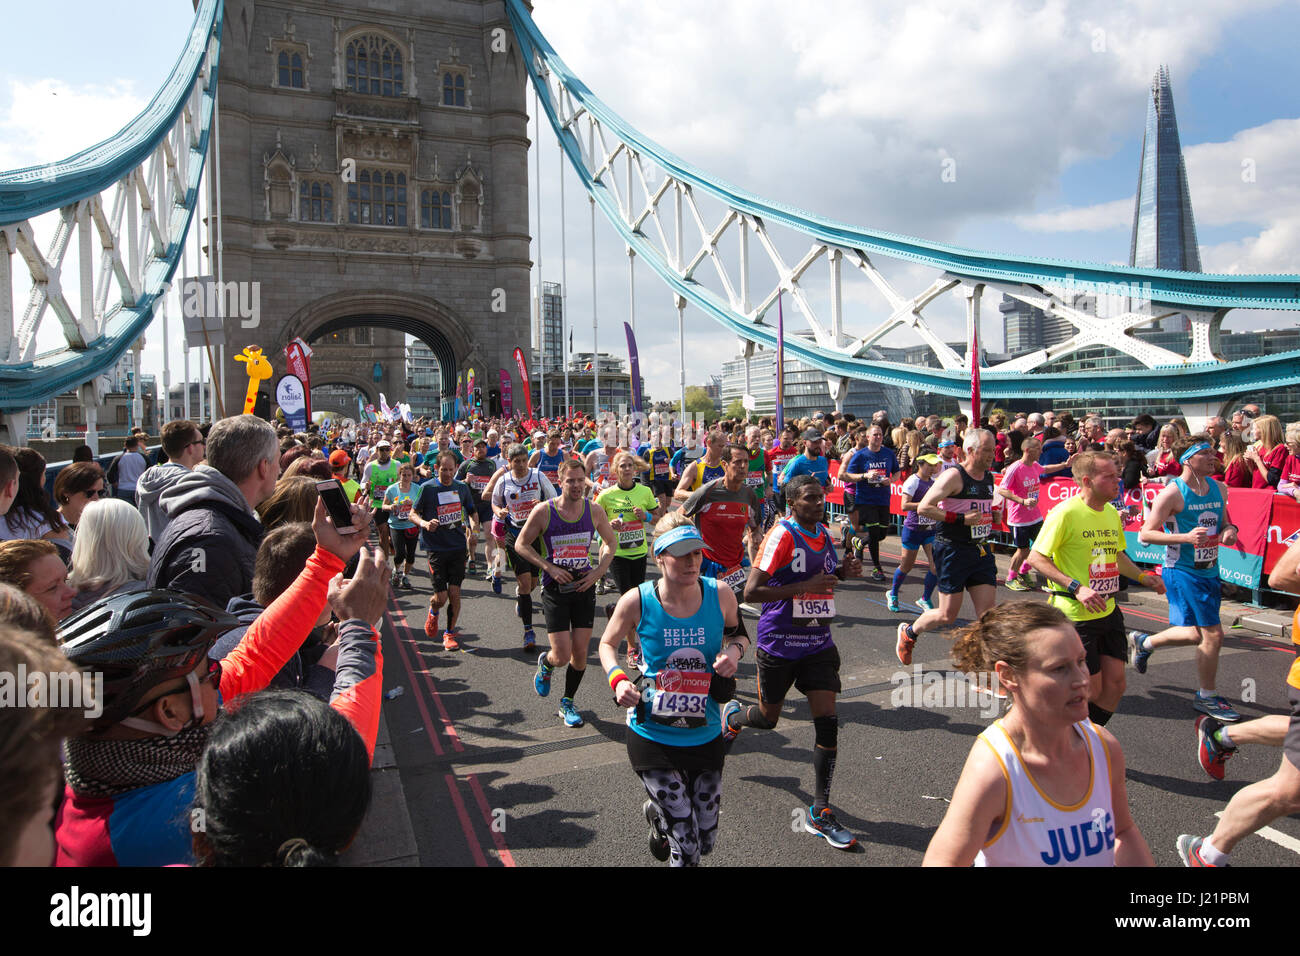 London, UK. 23rd April, 2017. LONDON MARATHON 2017. Today an estimated 50,000 runners took to the streets of the Stock Photo